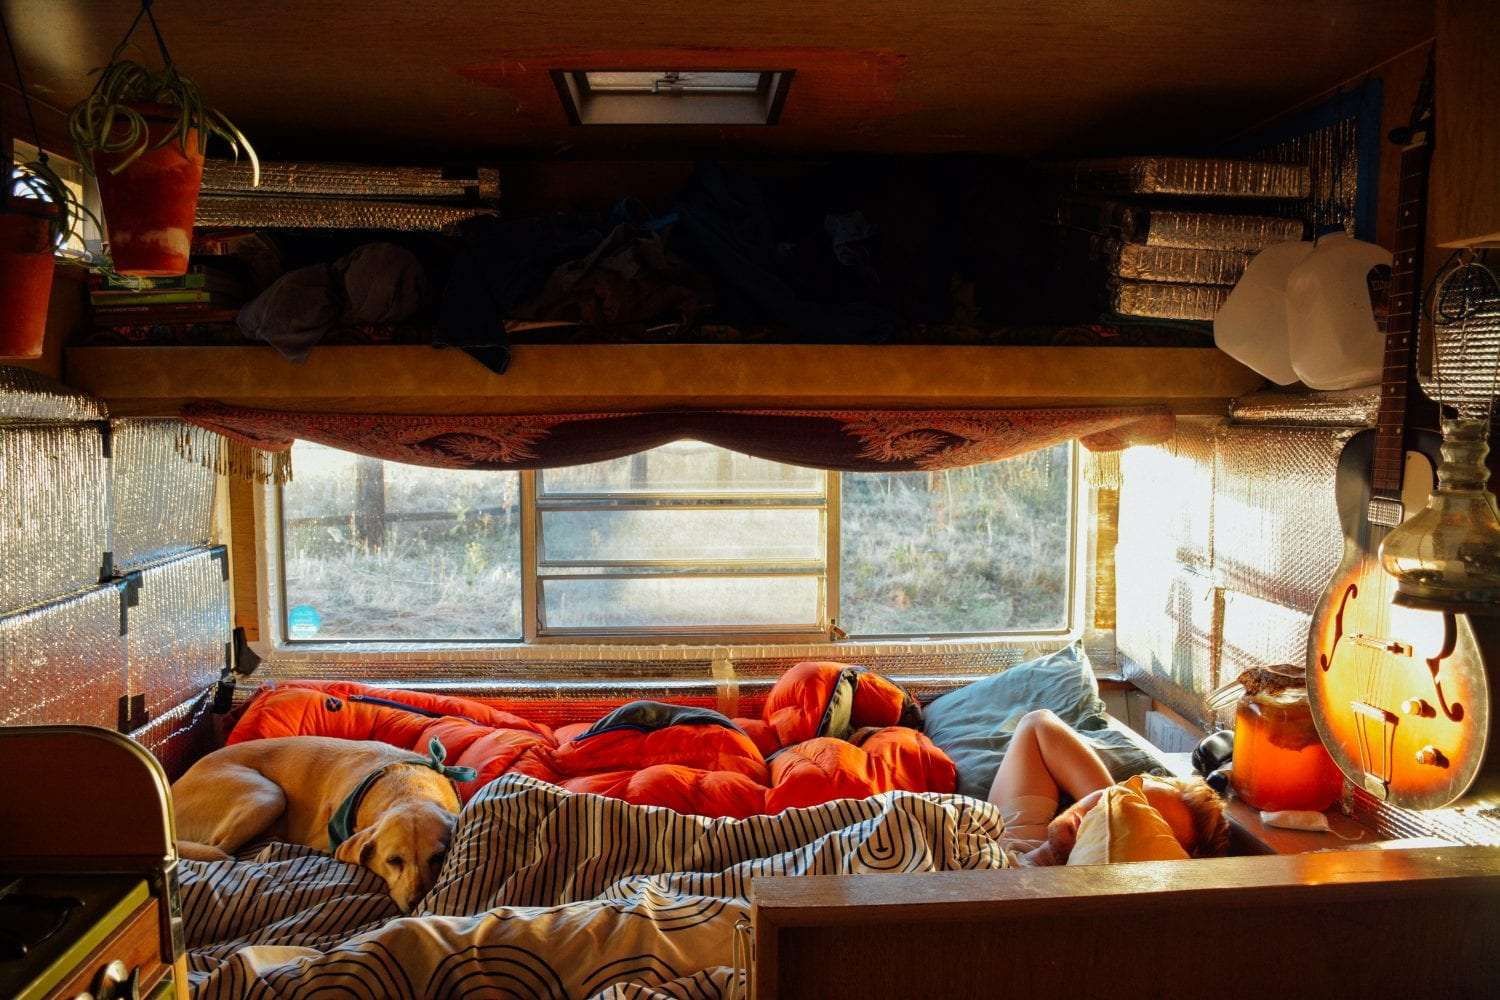 cozy blankets inside of a small travel trailer, a man and dog sleeping in the bed